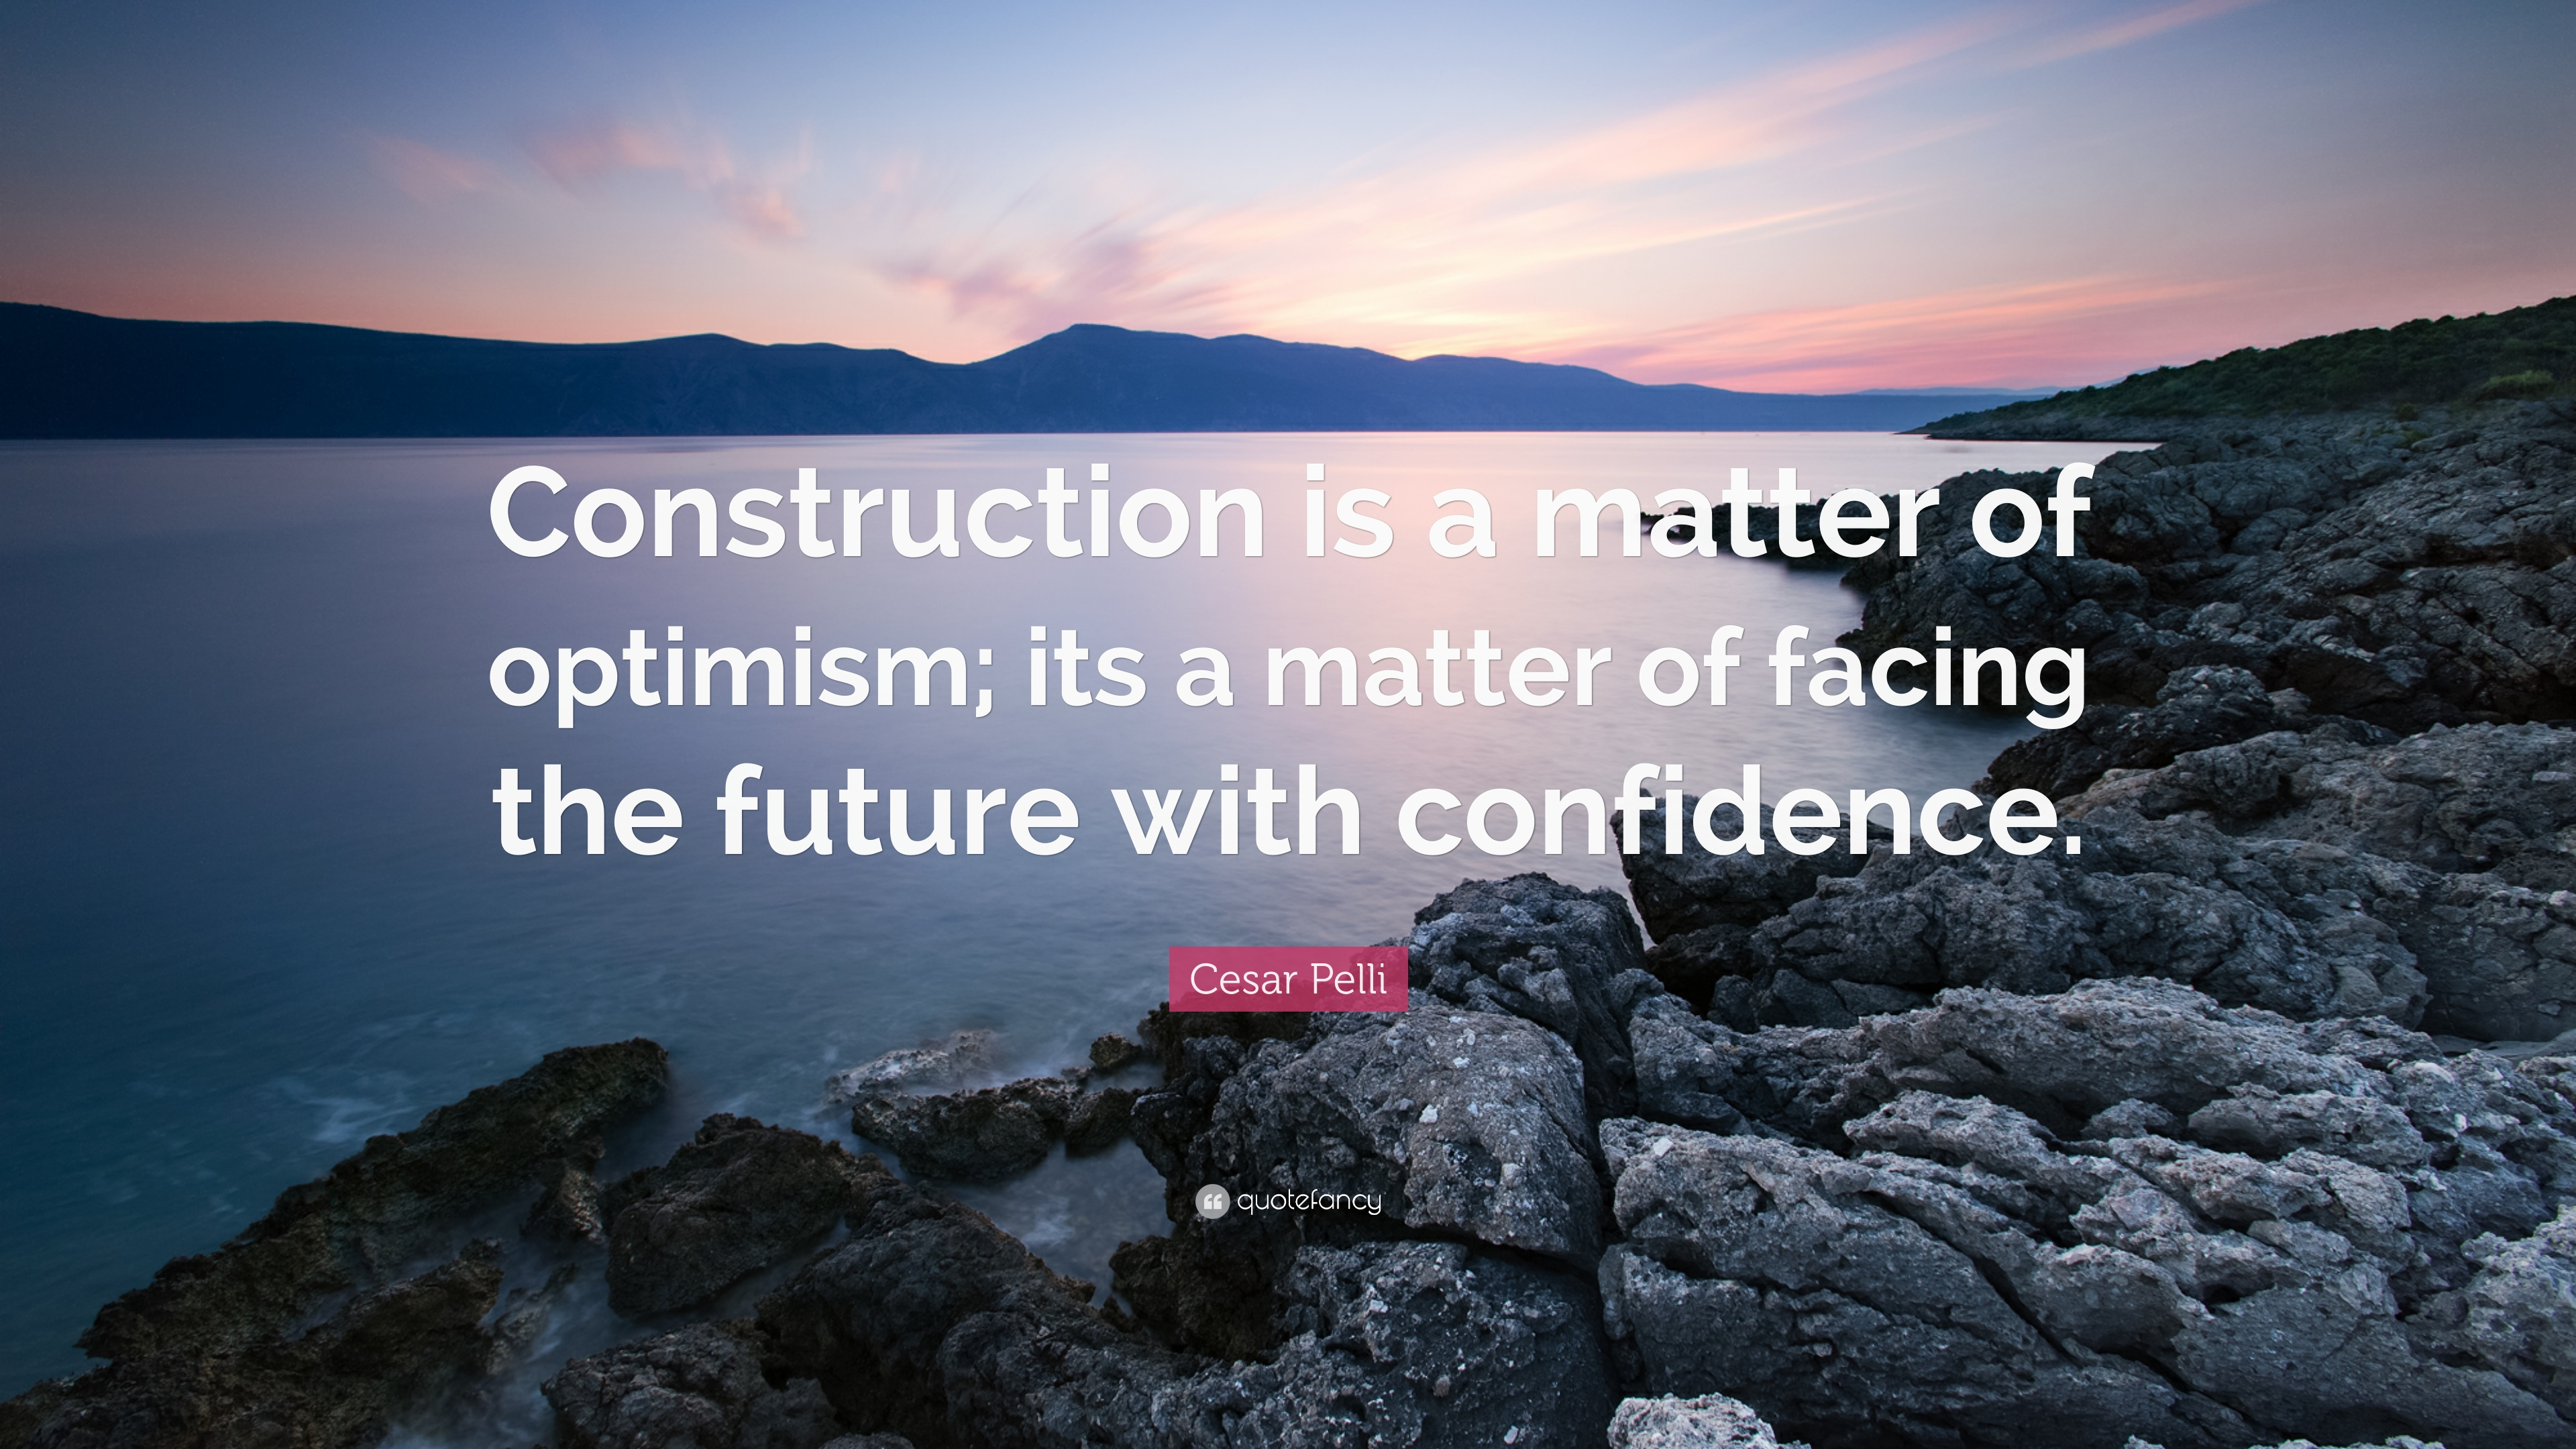 cesar pelli quote construction is a matter of optimism its a matter of